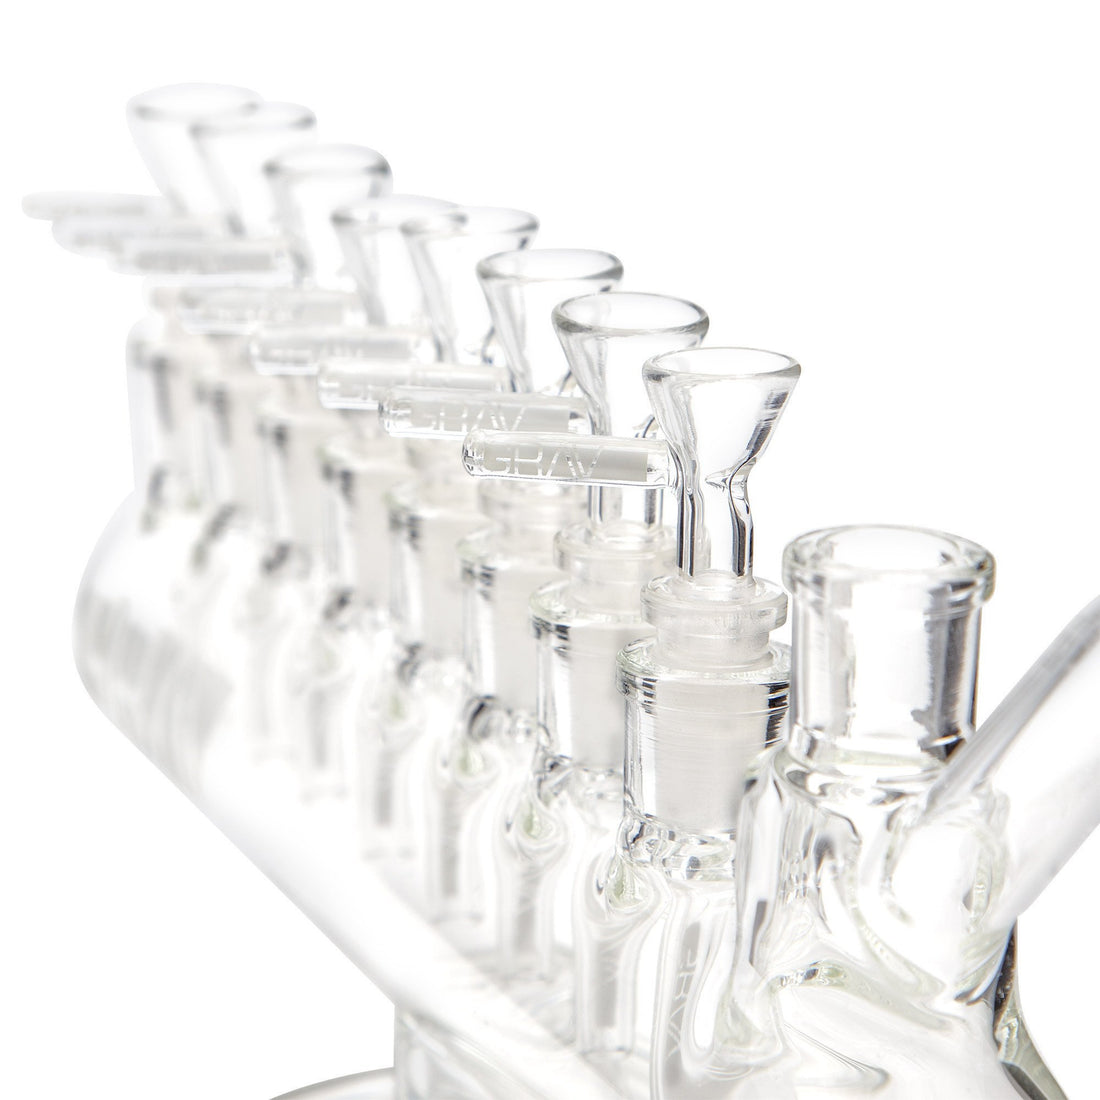 GRAV Menorah - 420 Science - The most trusted online smoke shop.